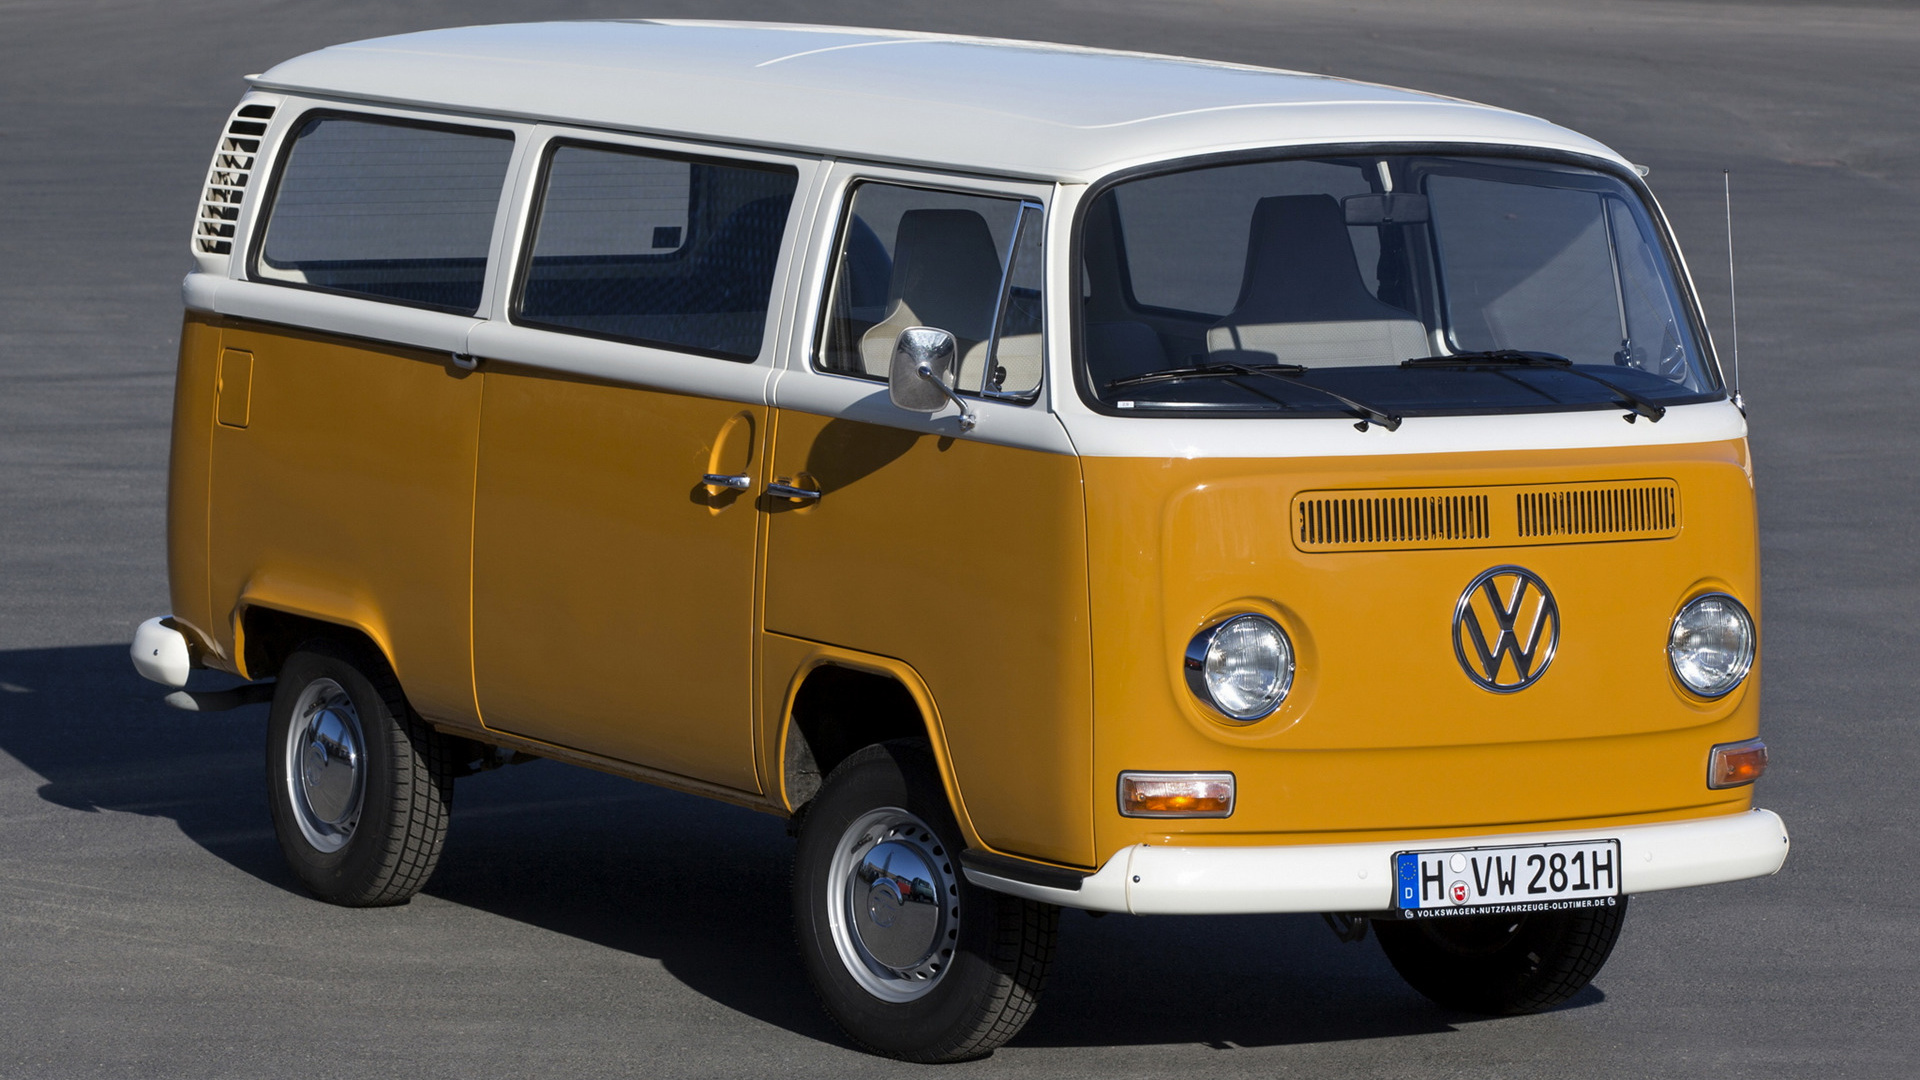 1967 Vw Bus >> 1967 Volkswagen T2 Bus - Wallpapers and HD Images   Car Pixel